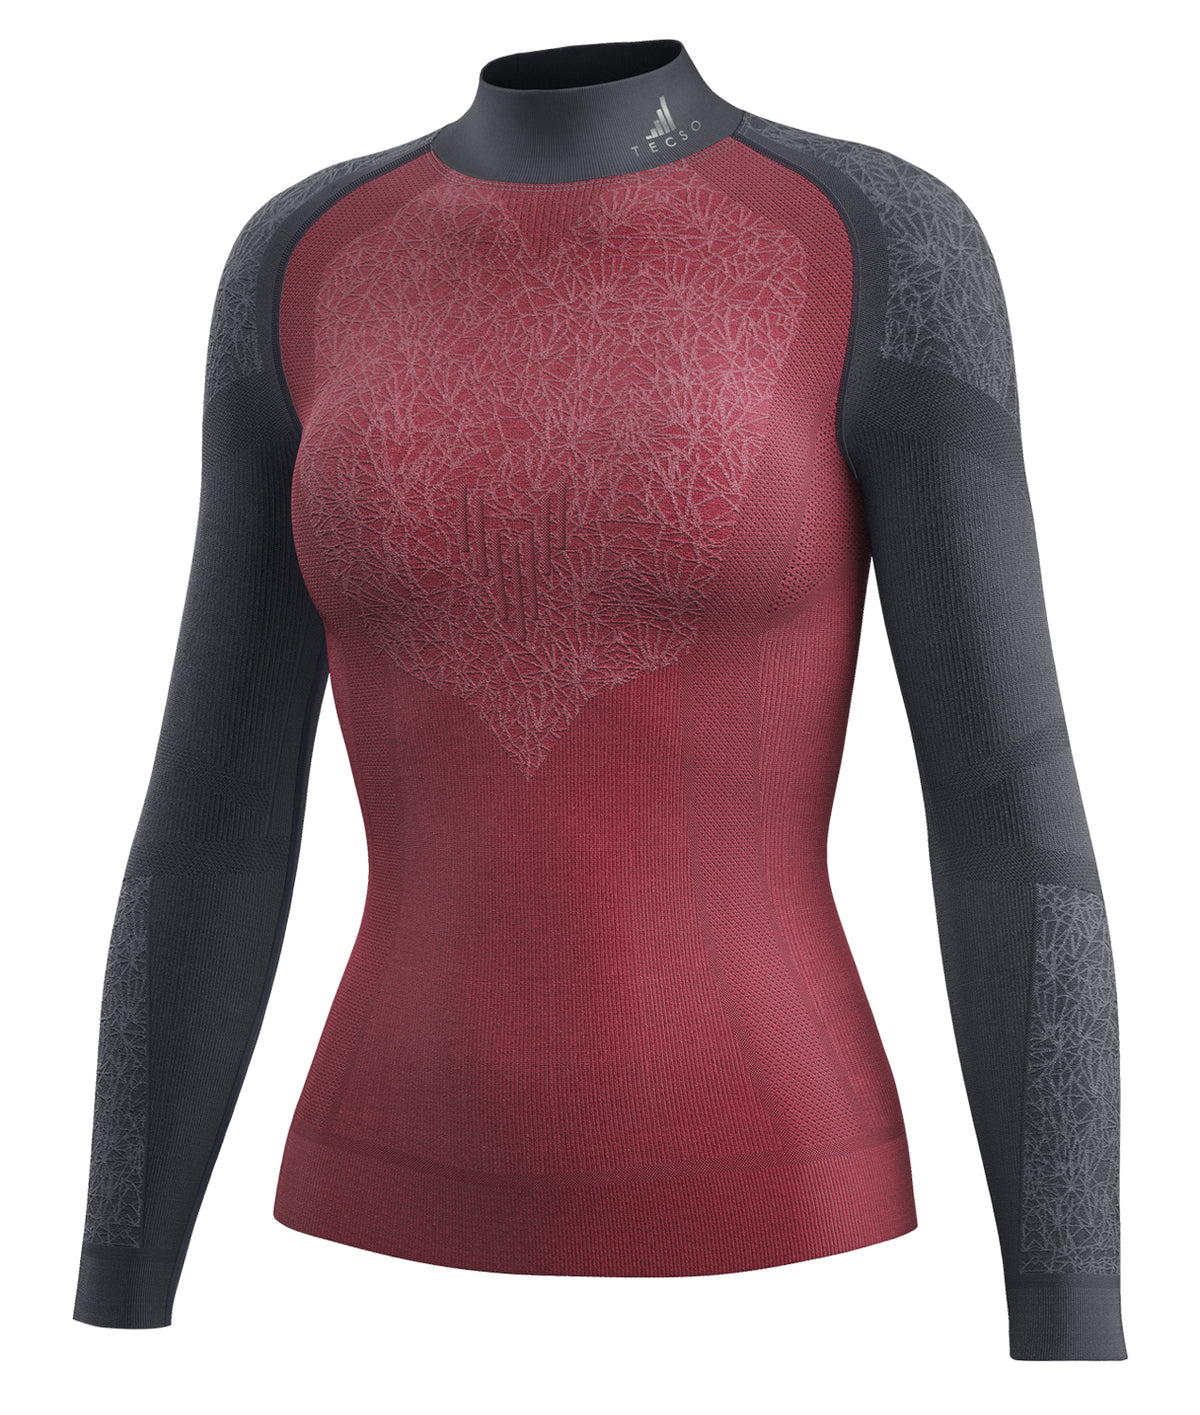 WINTER BASE LAYER - WOMAN